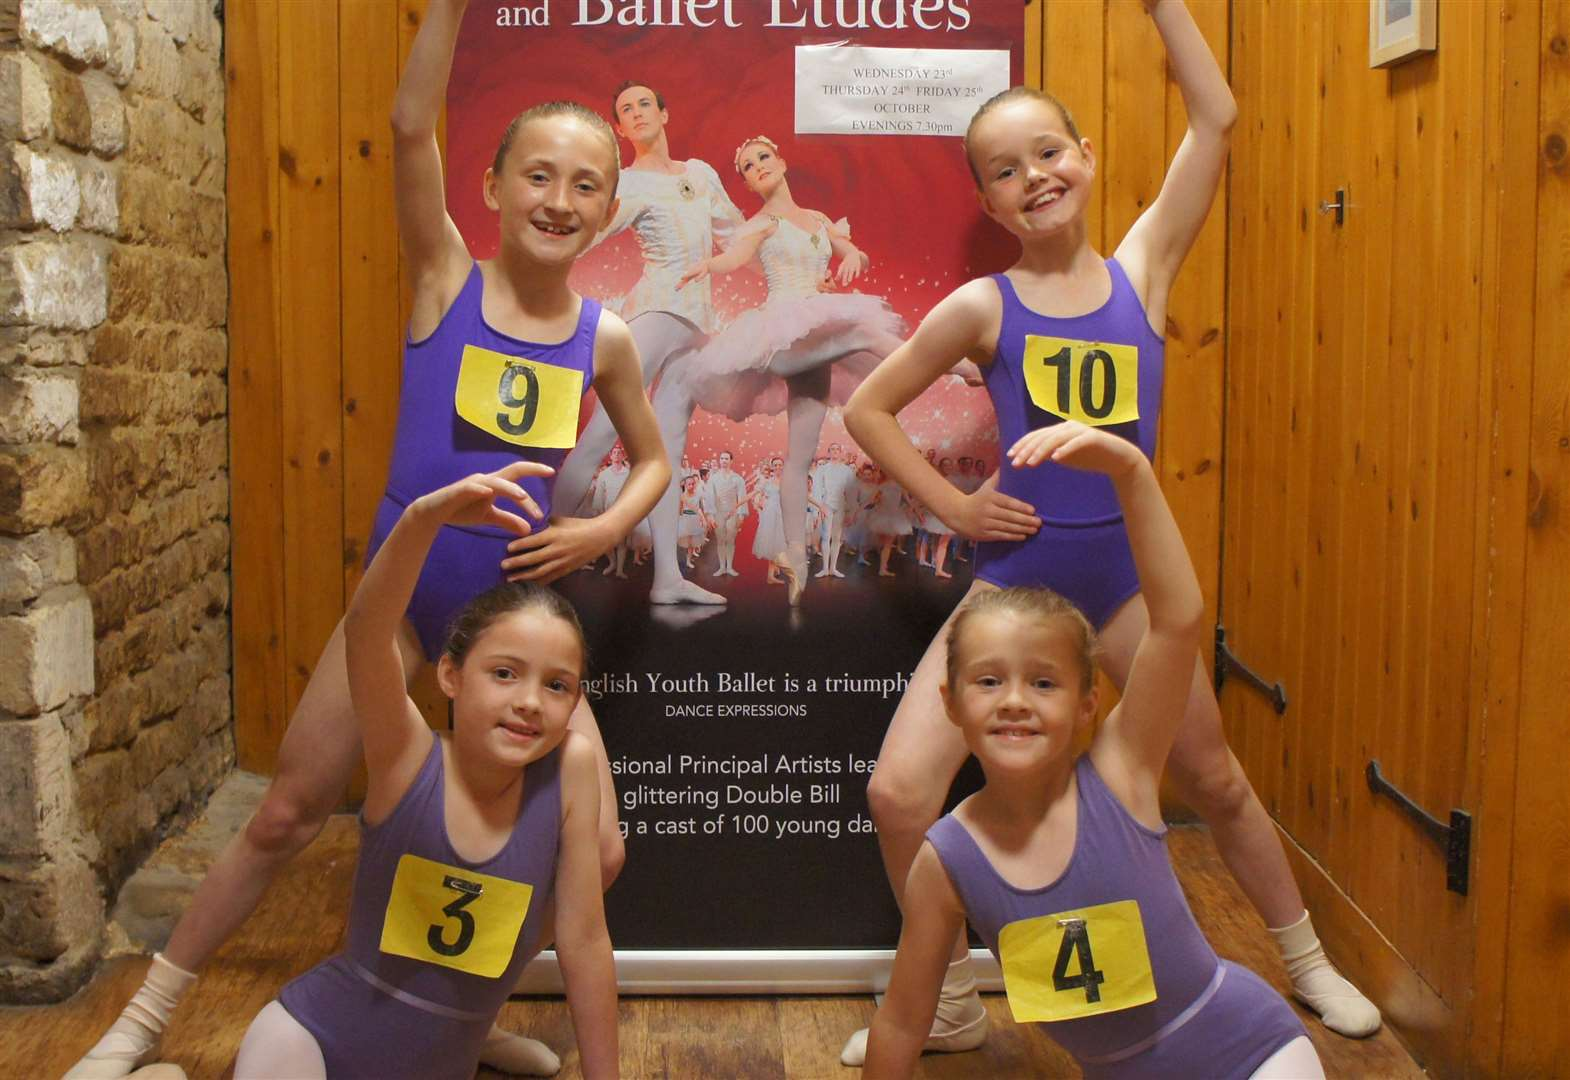 English Youth Ballet comes to town